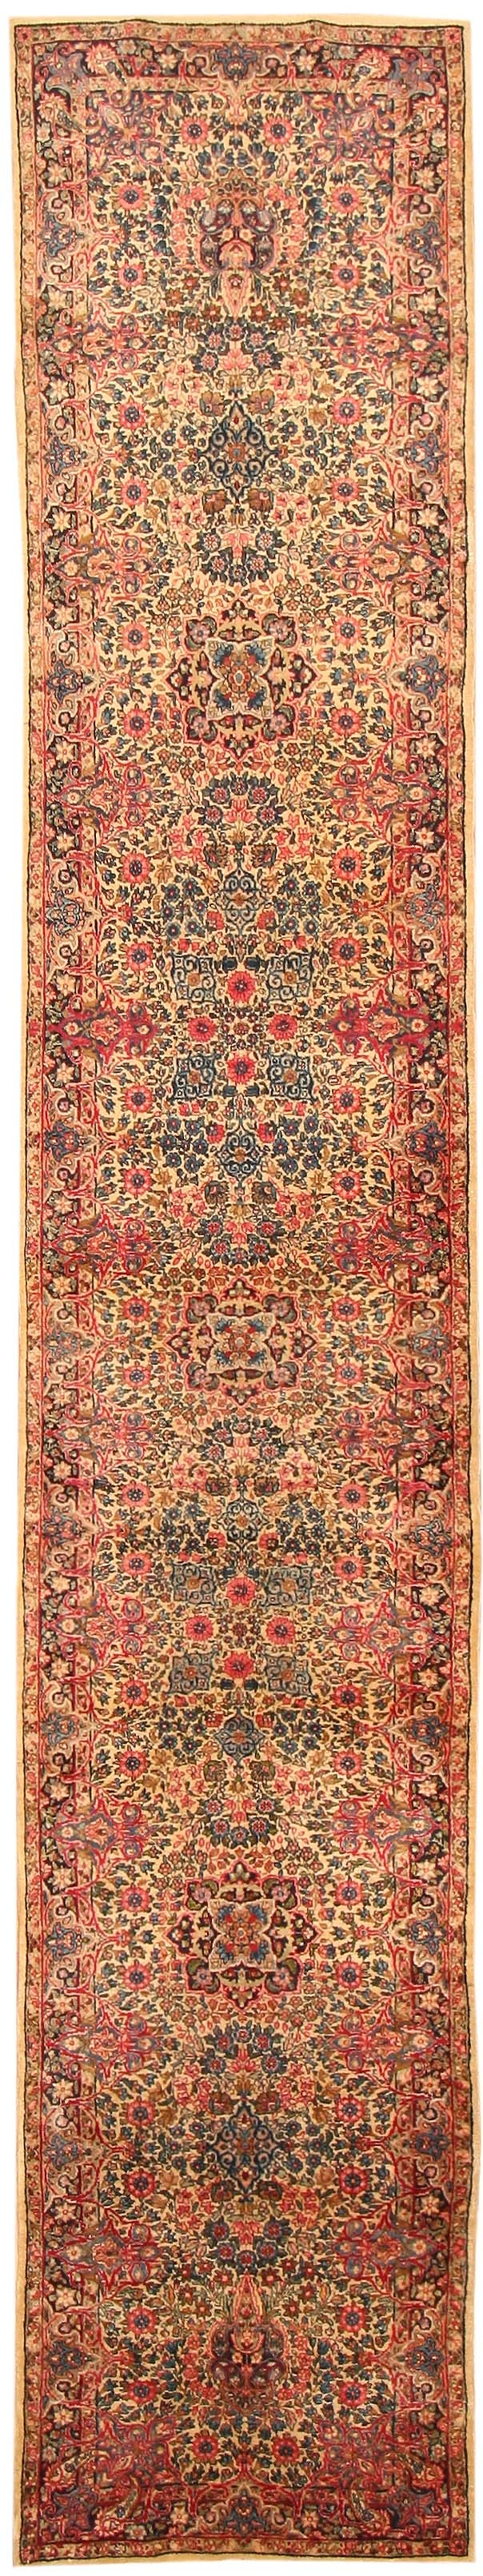 Oriental Rug Runner Roselawnlutheran Regarding Persian Carpet Runners (View 4 of 15)